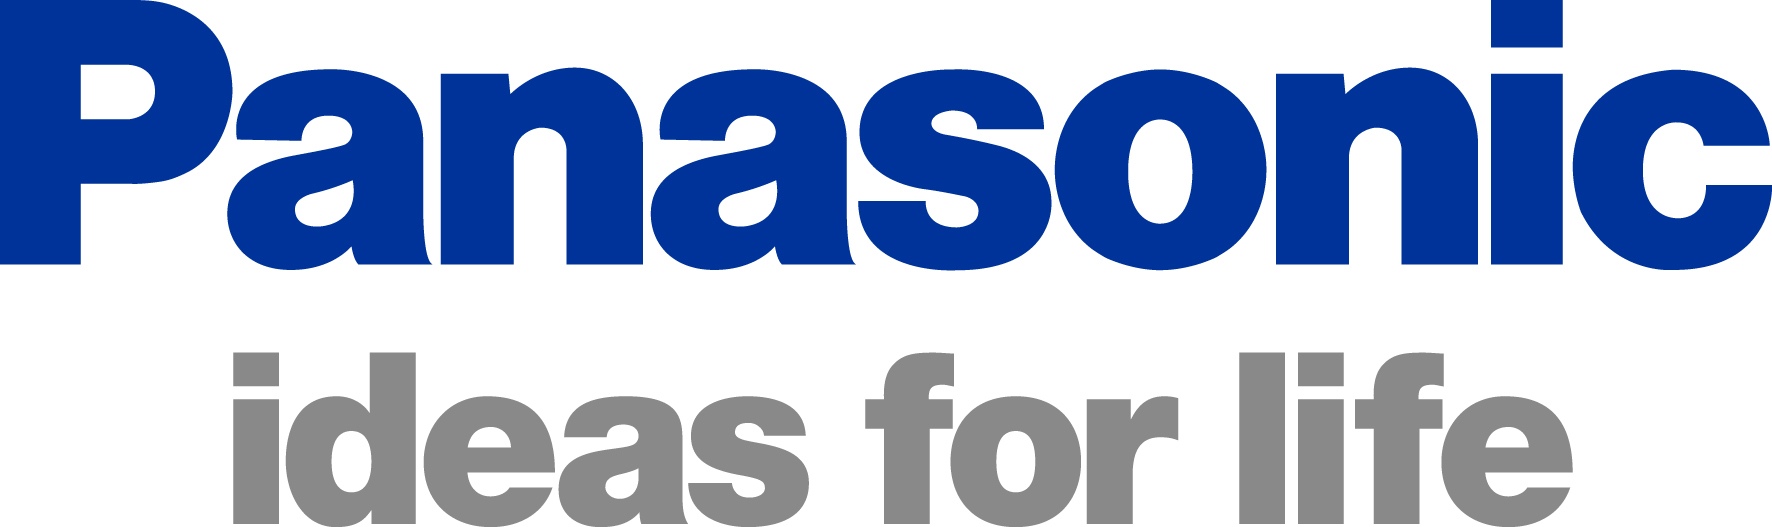 61112-logo-pressemitteilung-panasonic-marketing-europe-gmbh.jpg